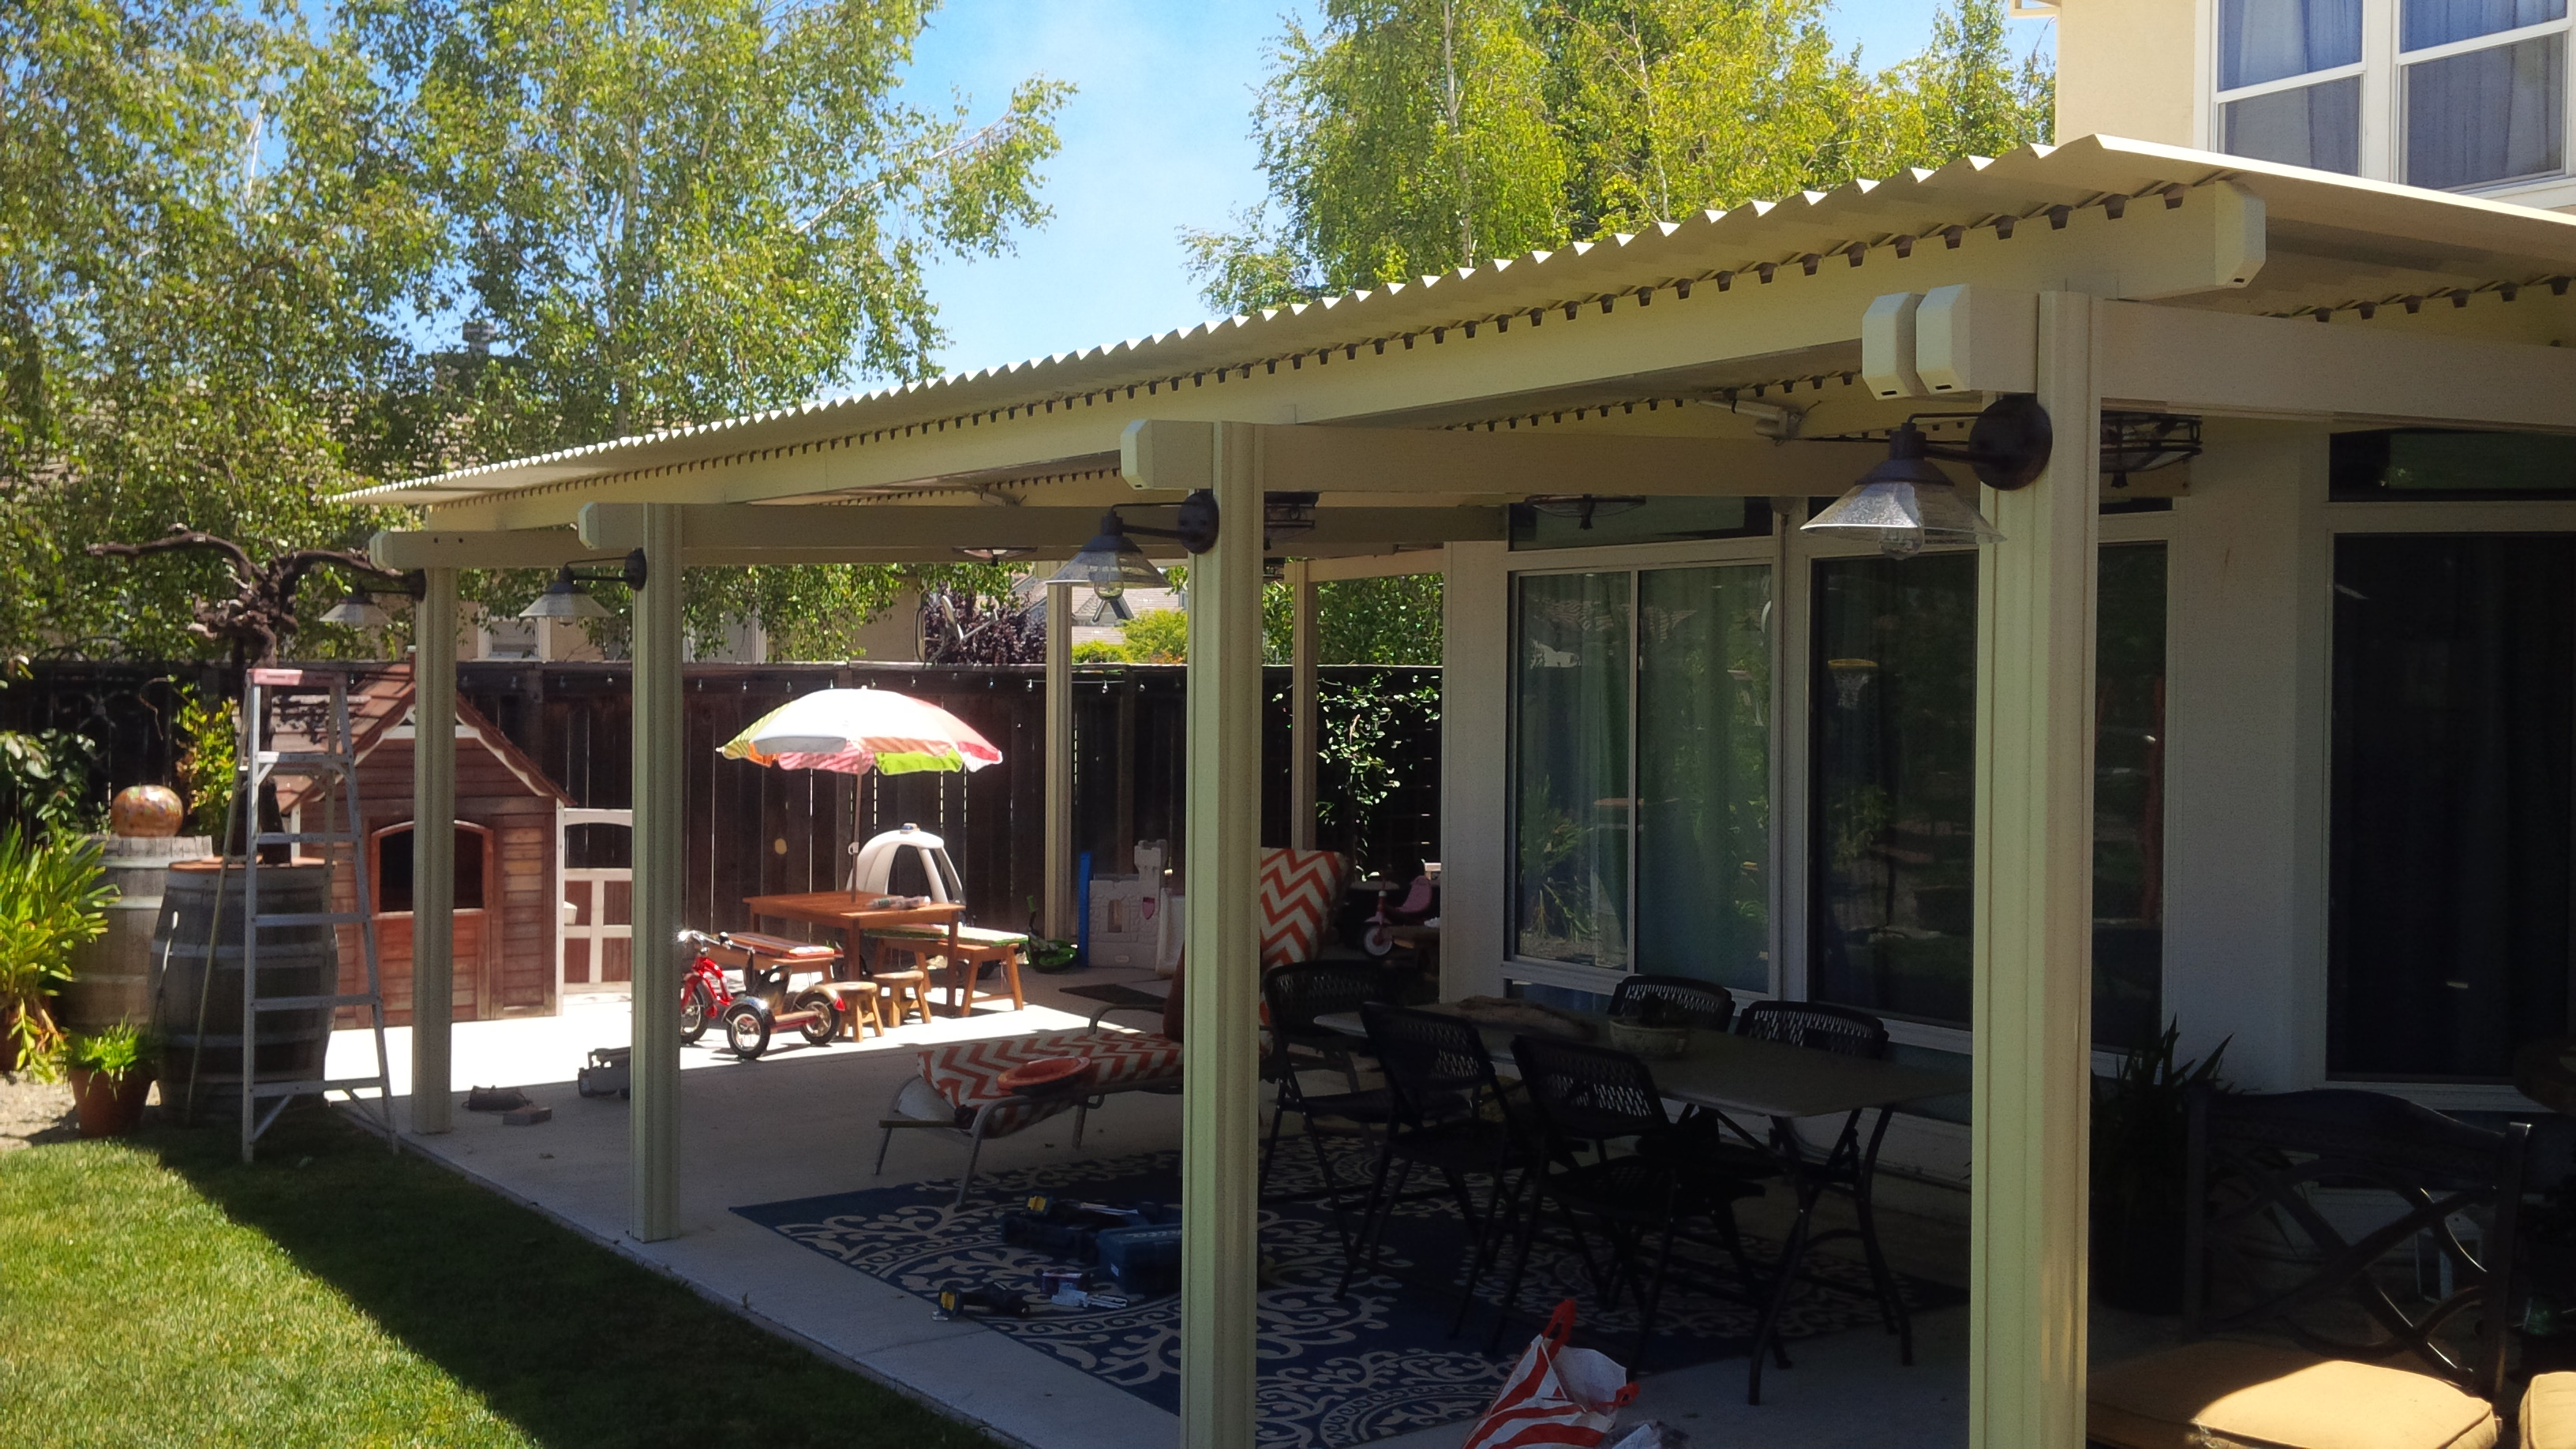 29.  Solara patio covers